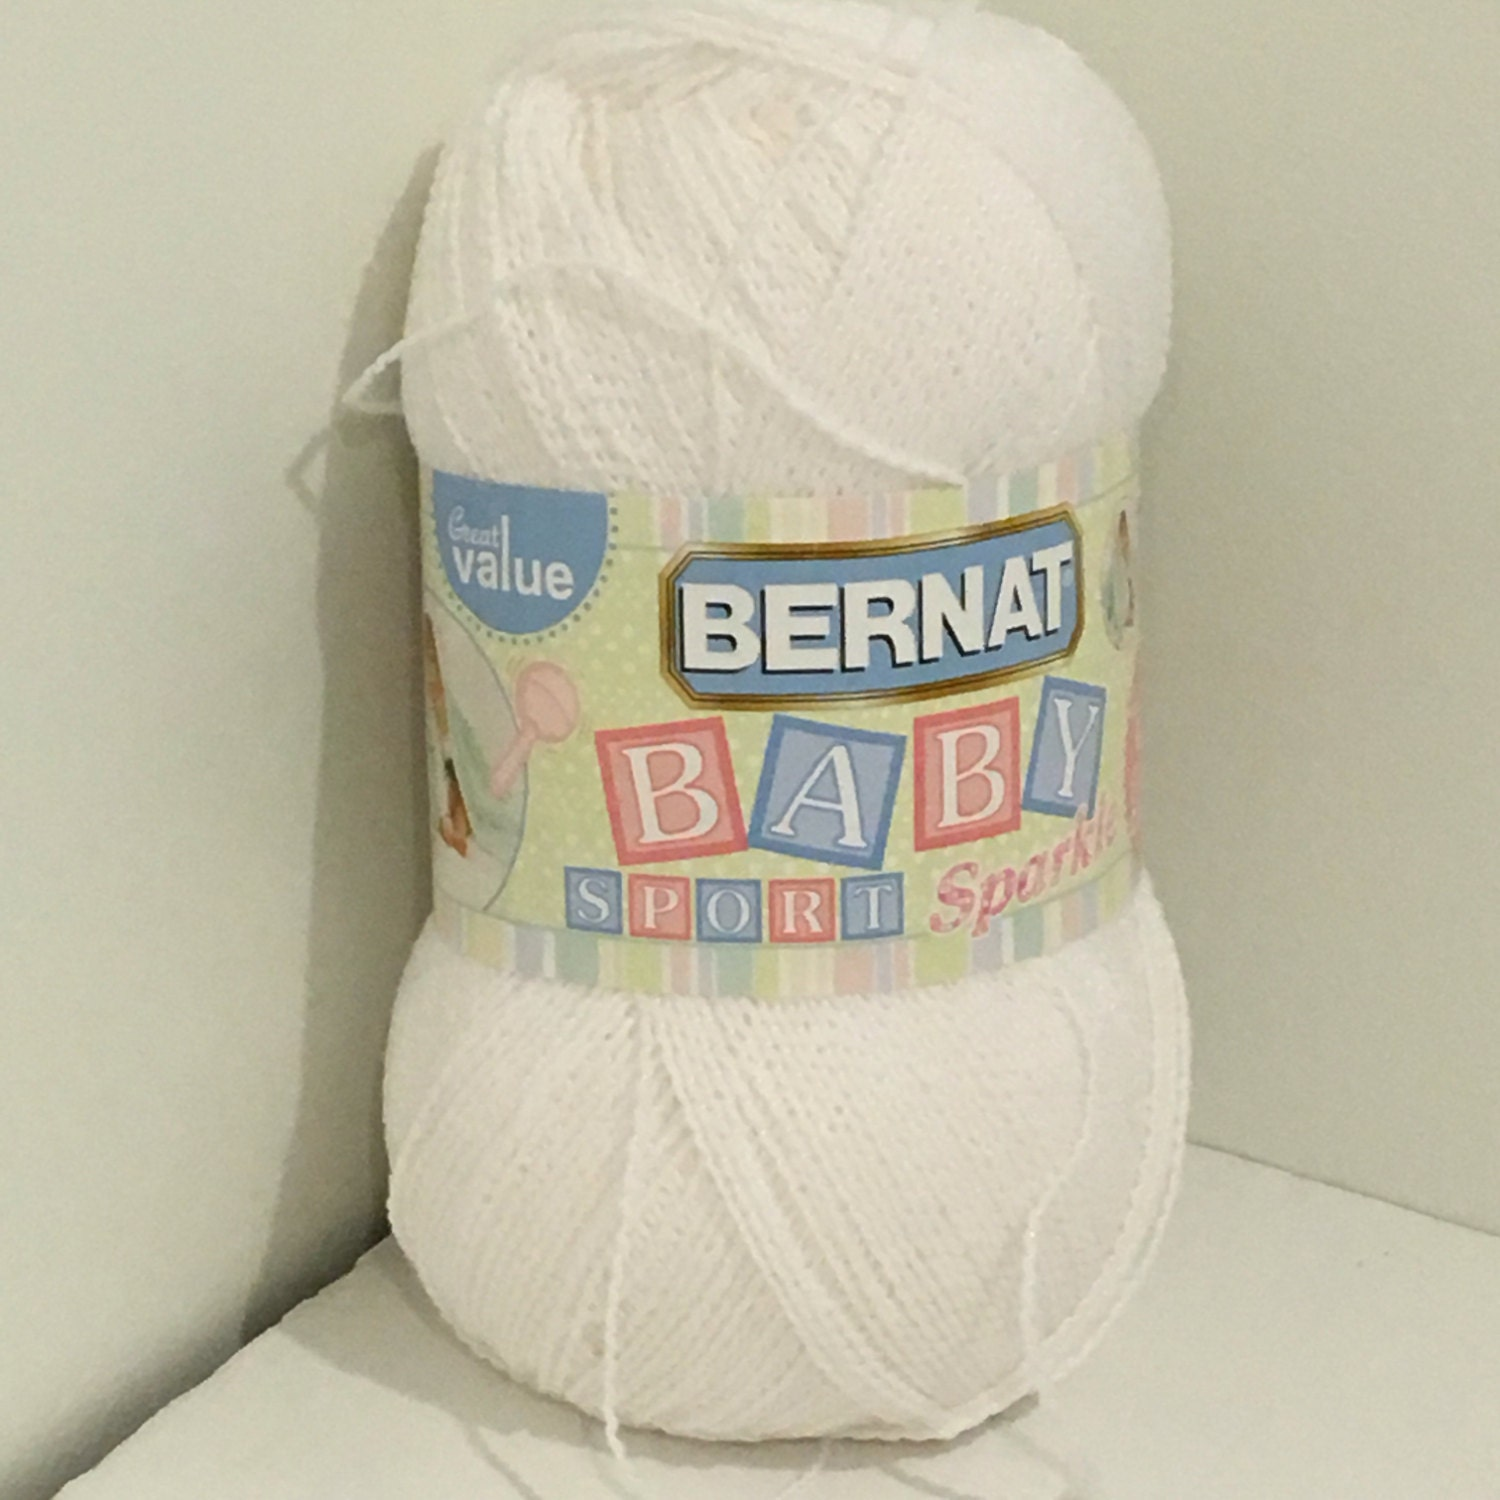 Knitting Patterns For Bernat Baby Sport Yarn : Bernat Baby Sport Big Ball Yarn white sparkle. 10.5 oz/300 g